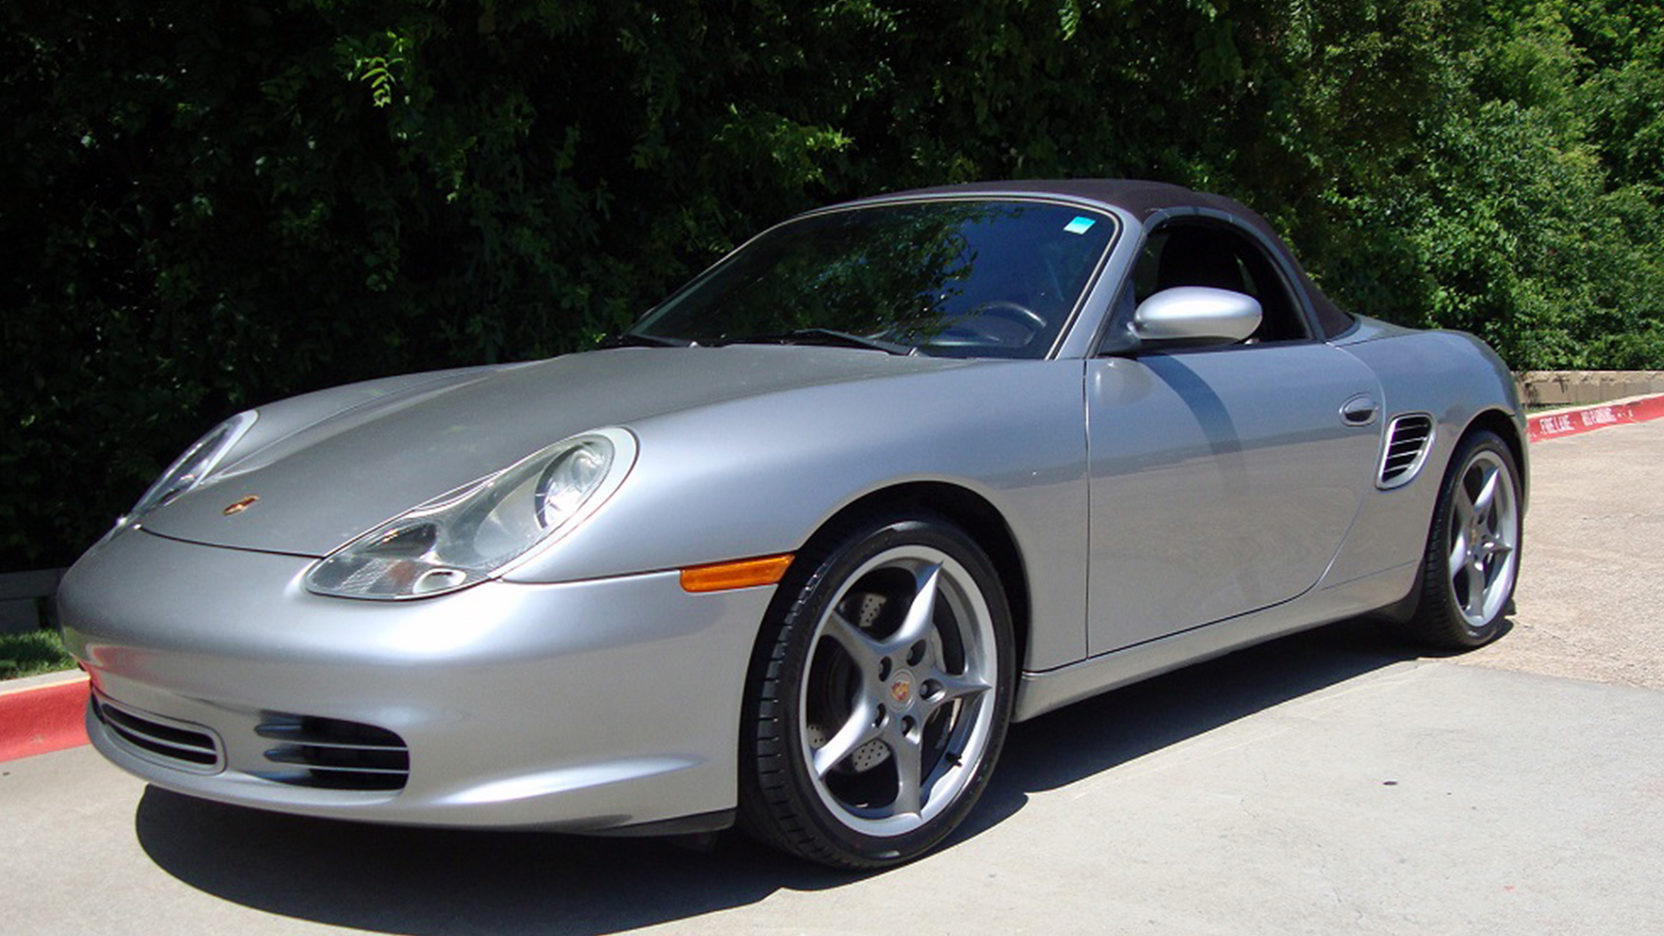 small resolution of 2004 porsche boxster s special edition 1 full screen